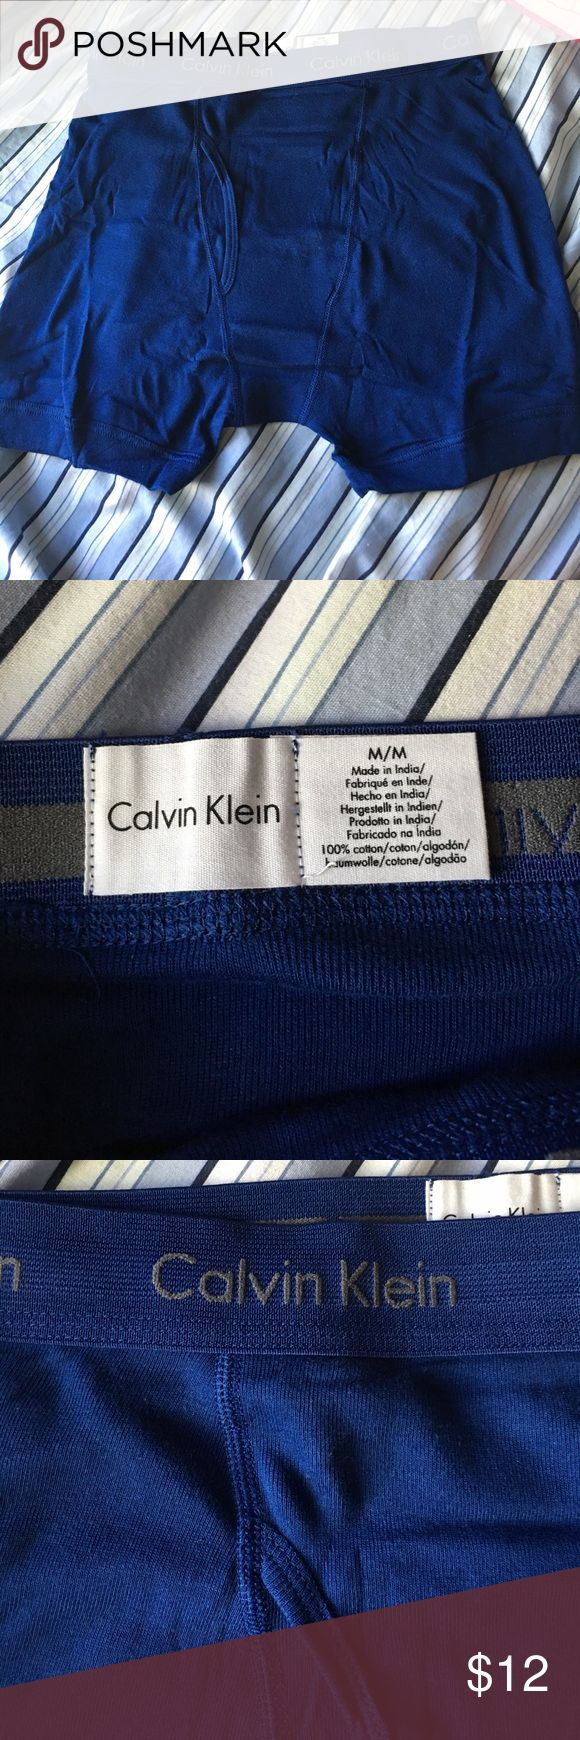 New Calvin Klein Boxer Briefs New pair, just bought the wrong size! Needs a new home!💜wrinkly because it's been stored and not used. Calvin Klein Underwear Underwear & Socks Boxer Briefs